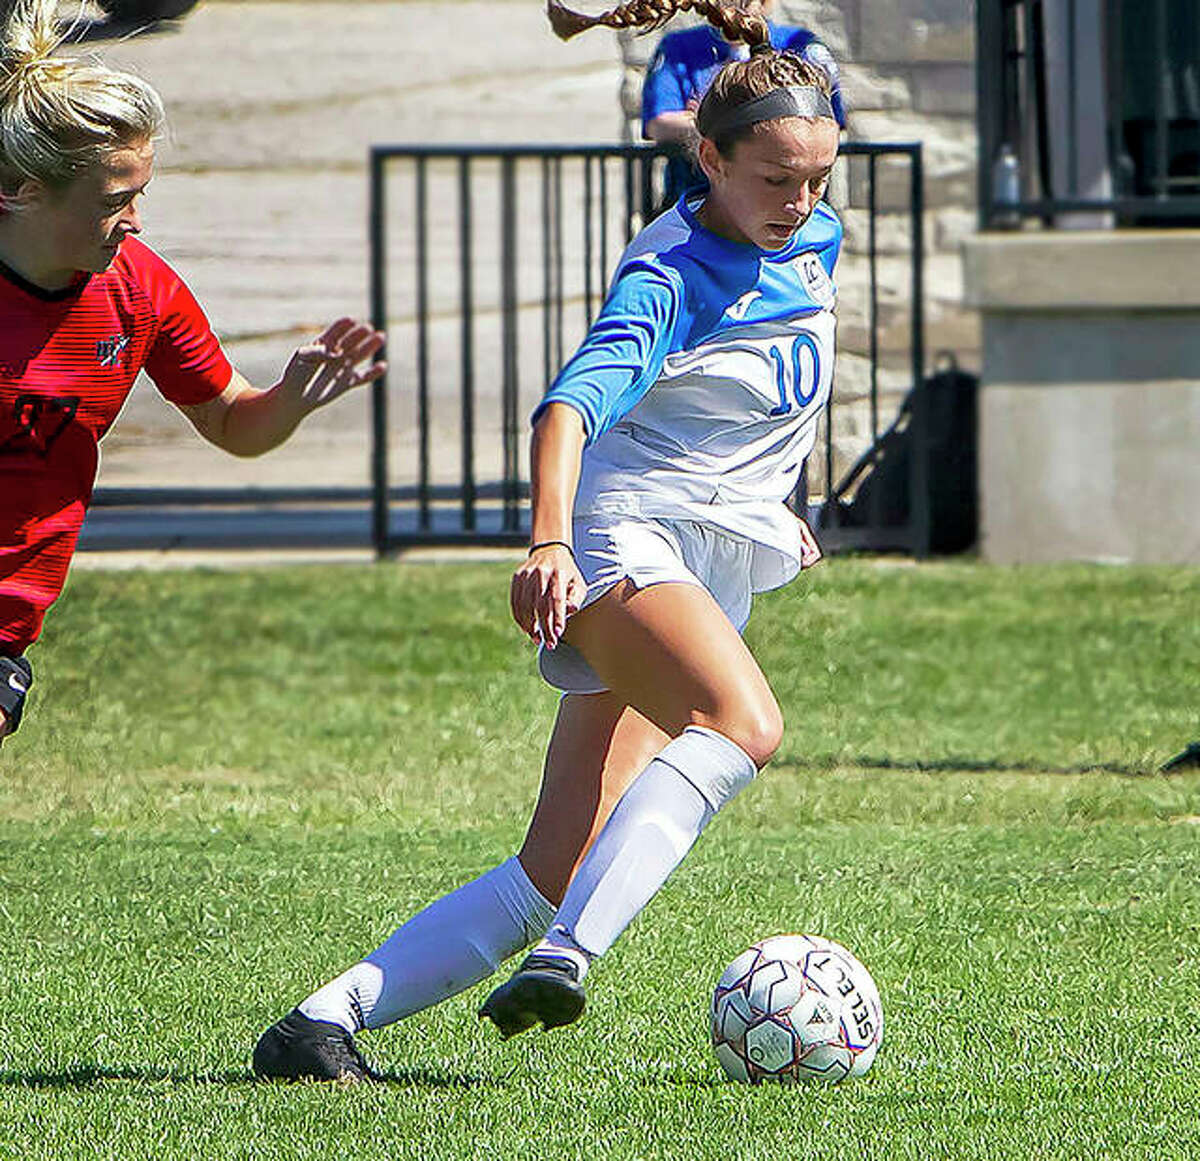 Grace Osvath of Lewis and Clark Community College (10) scored four goals in the Trailblazers' 11-0 victory at Kankakee College Sunday.